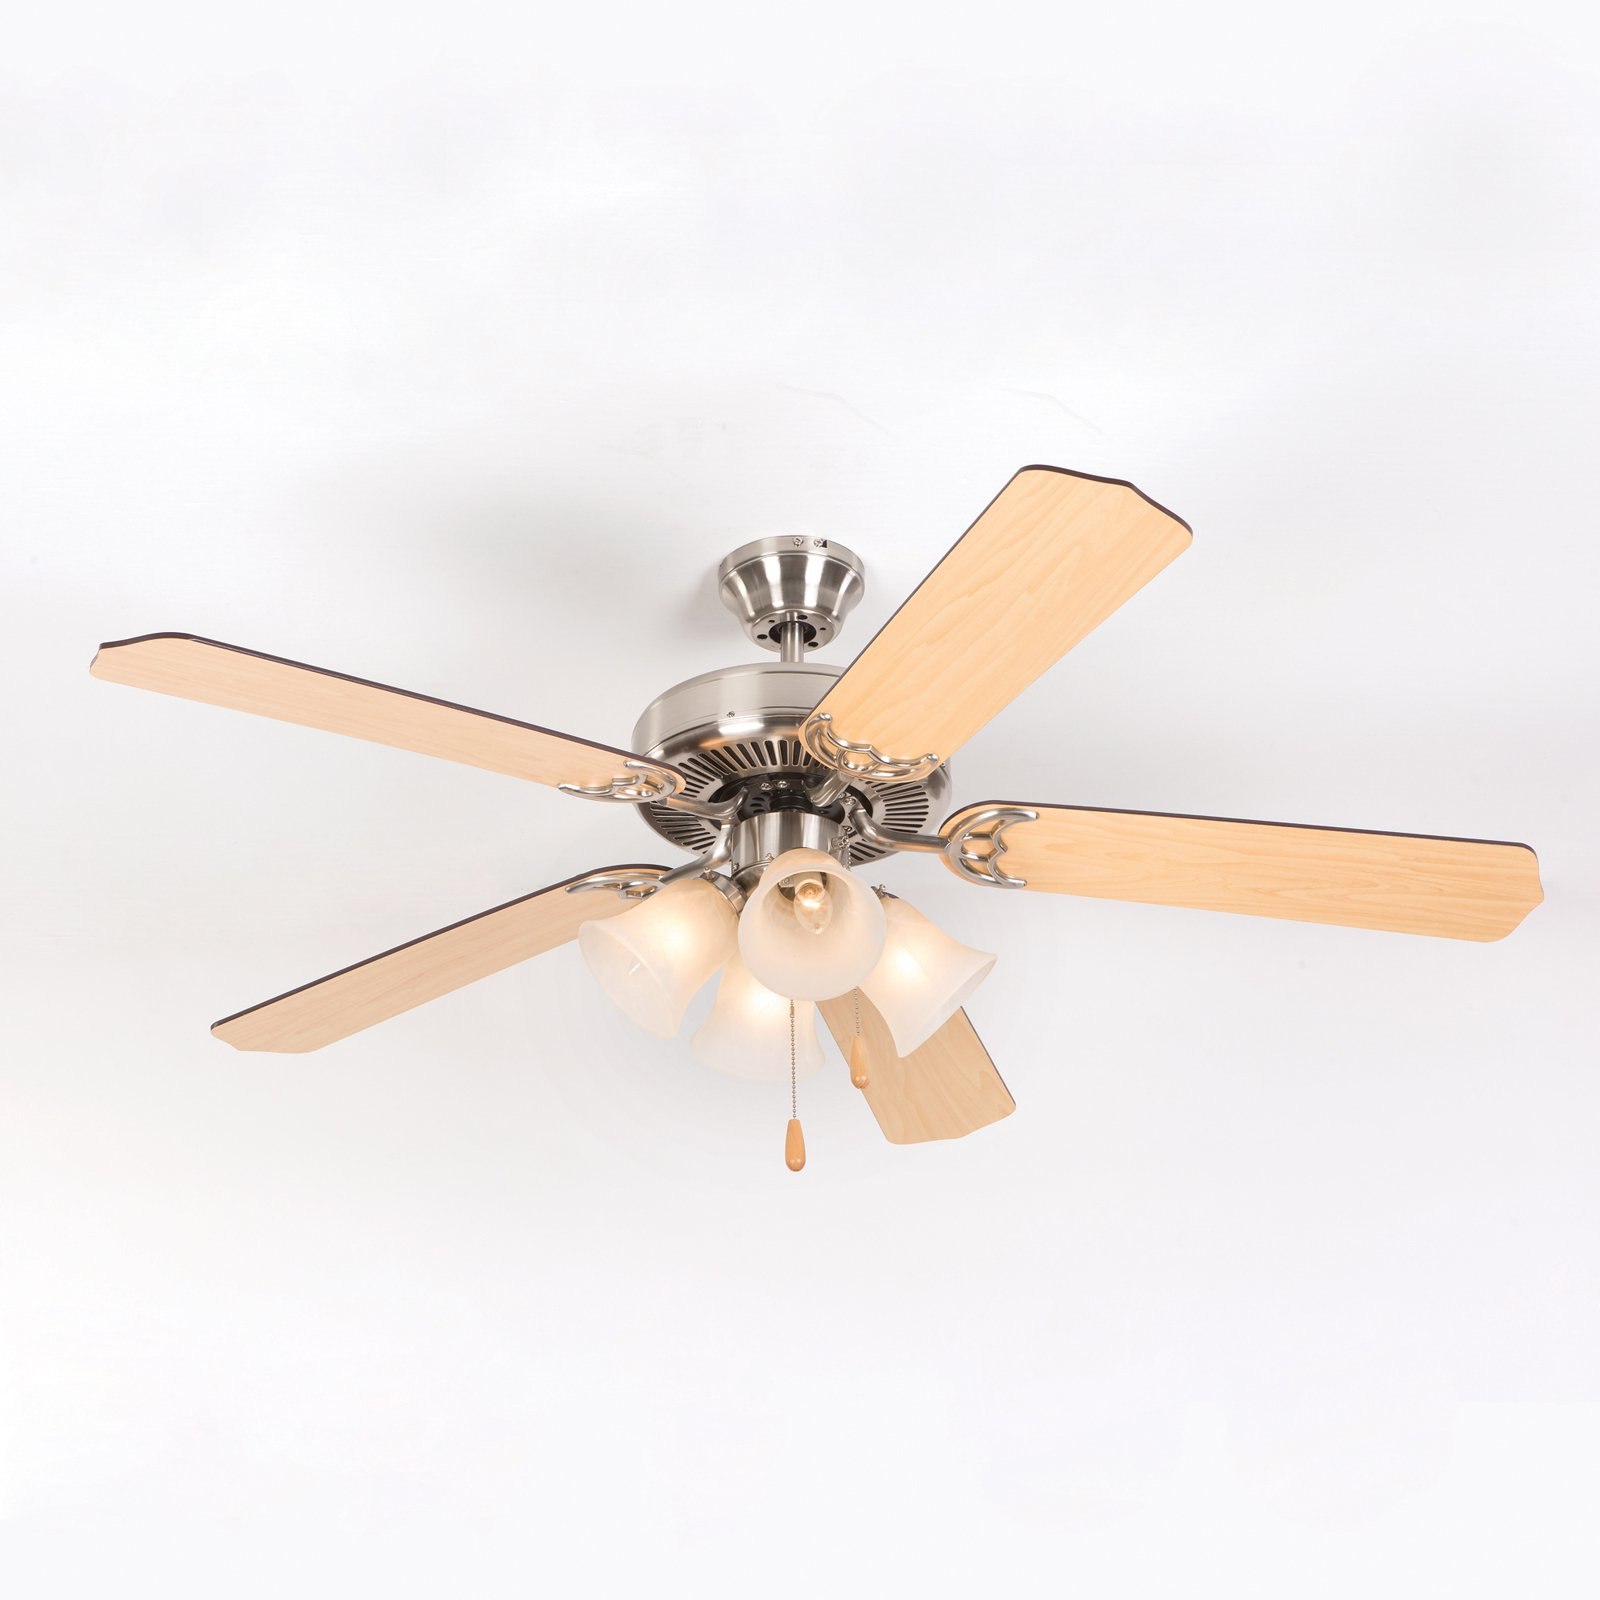 Yosemite Home Decor WESTFIELD BBN 4 Westfield 52 in  Indoor Ceiling     Yosemite Home Decor WESTFIELD BBN 4 Westfield 52 in  Indoor Ceiling Fan